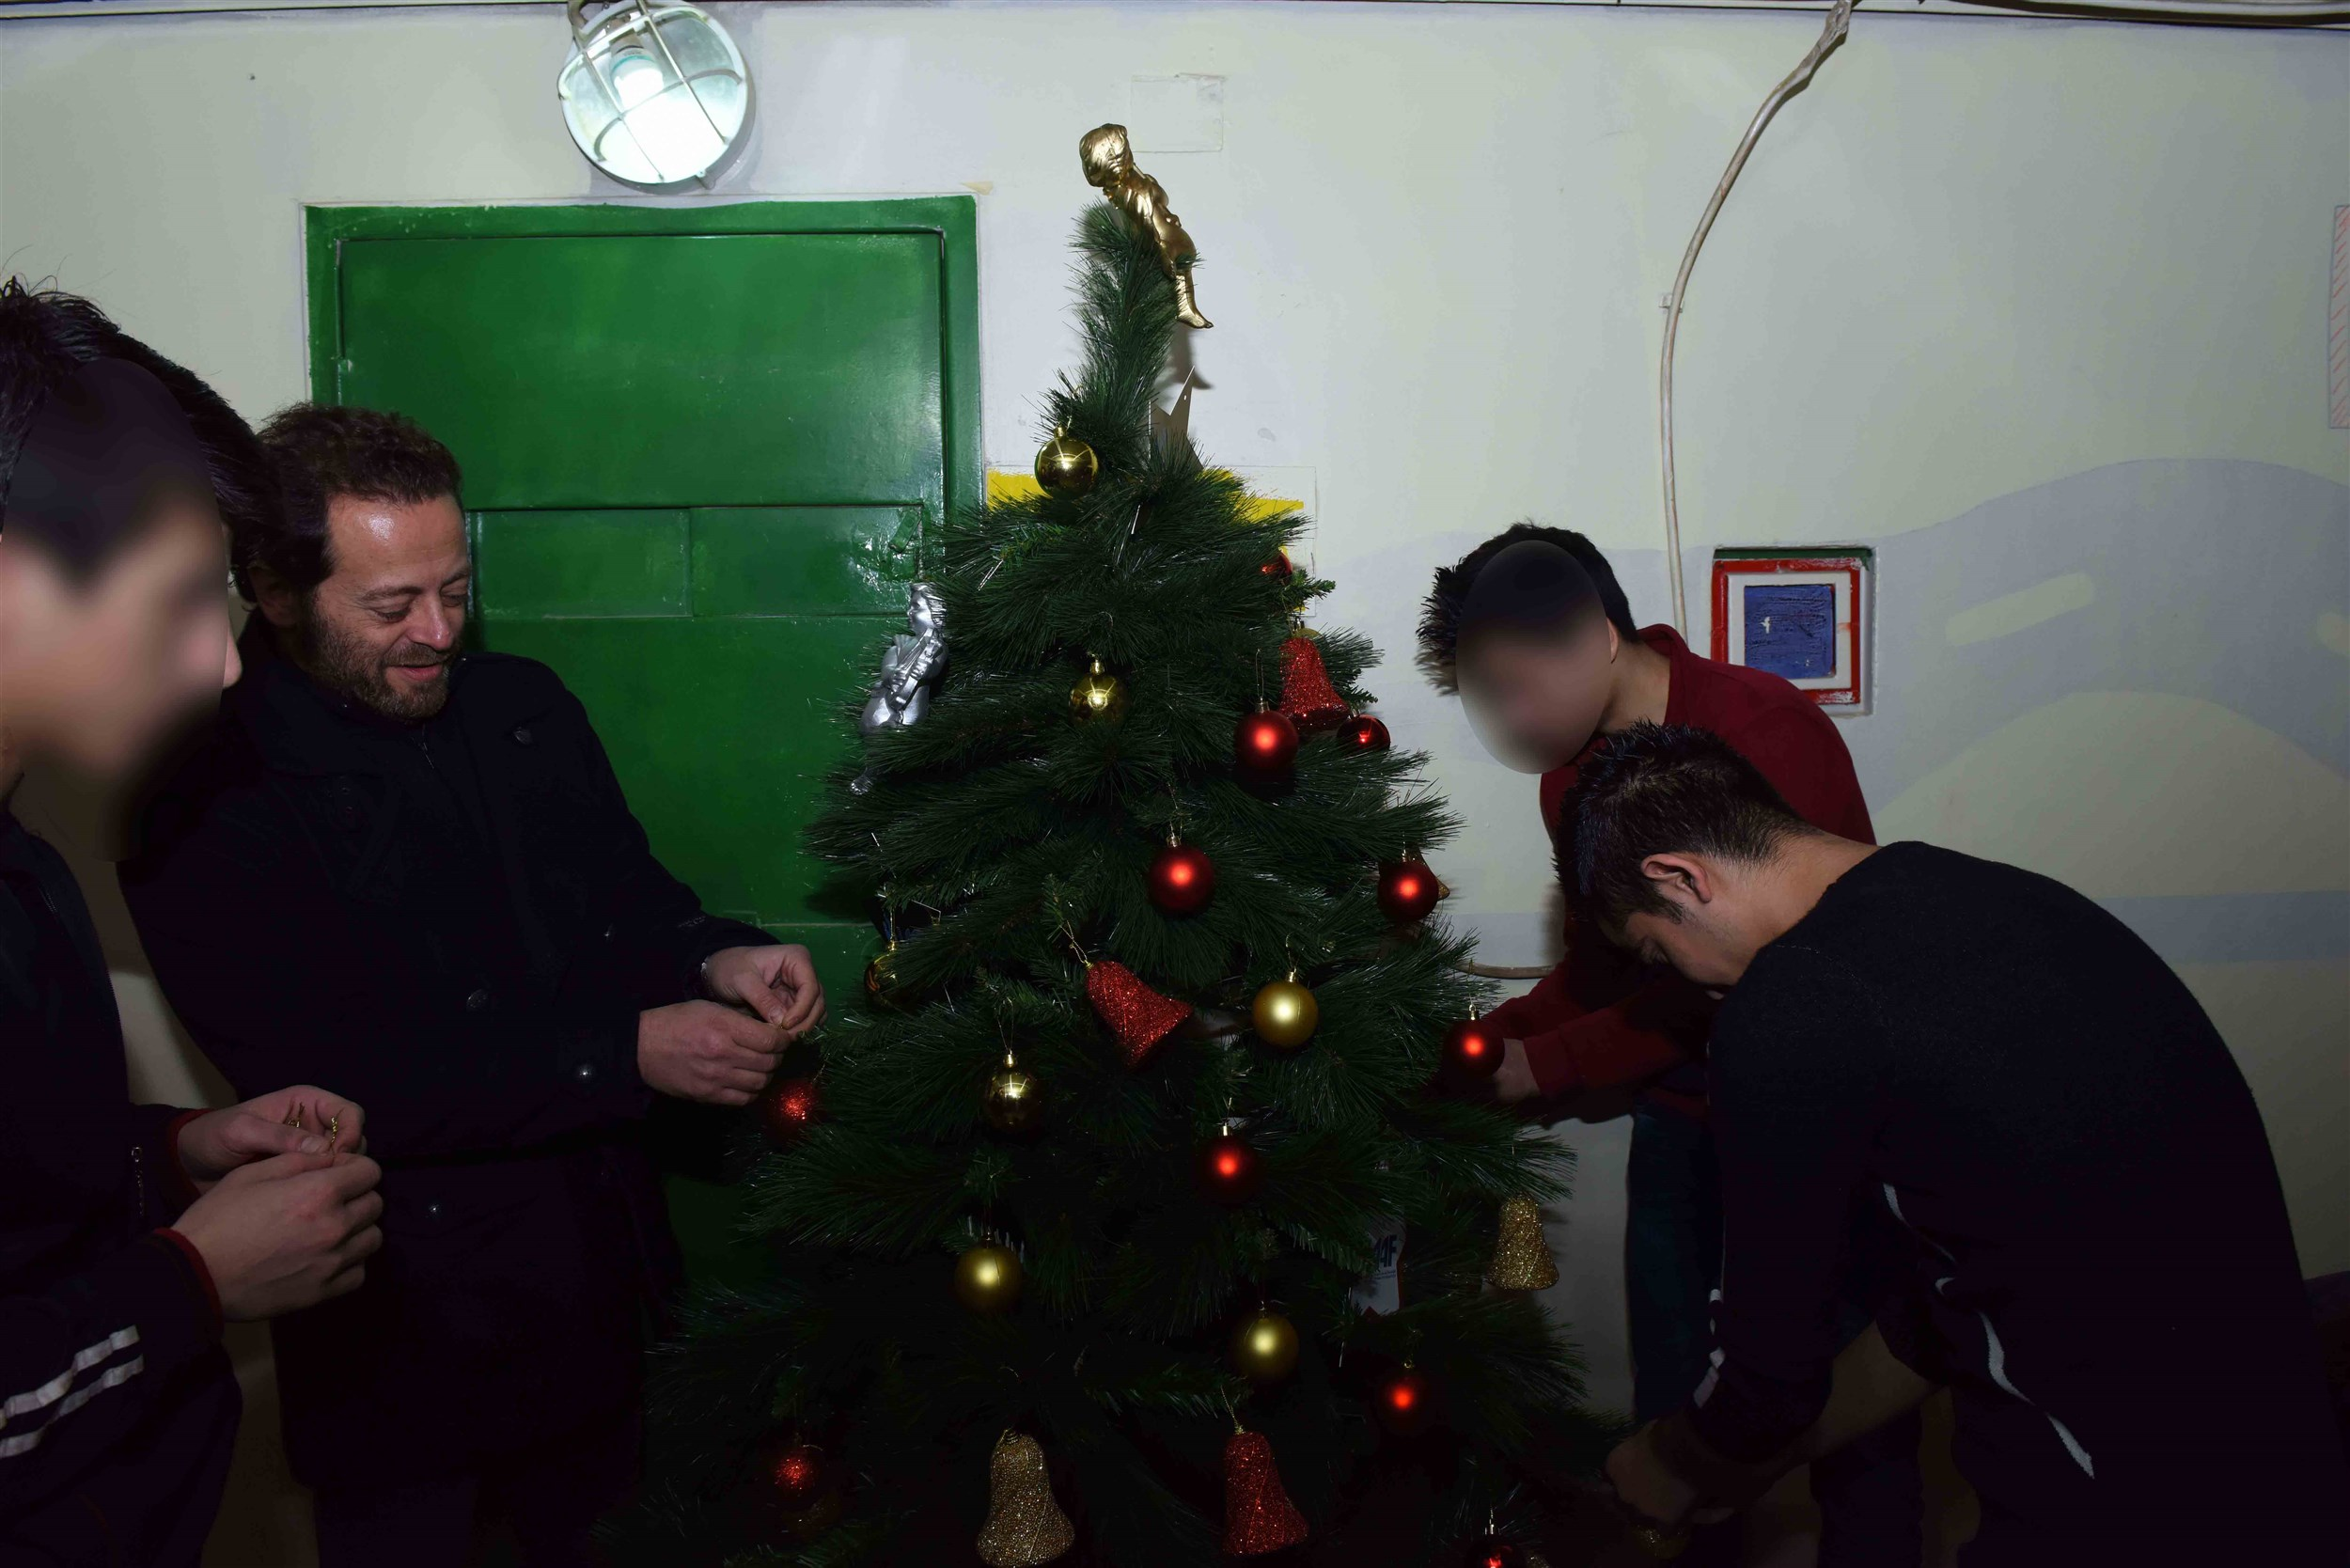 actor badih abou chakra helping in the decoration of the christmas tree.